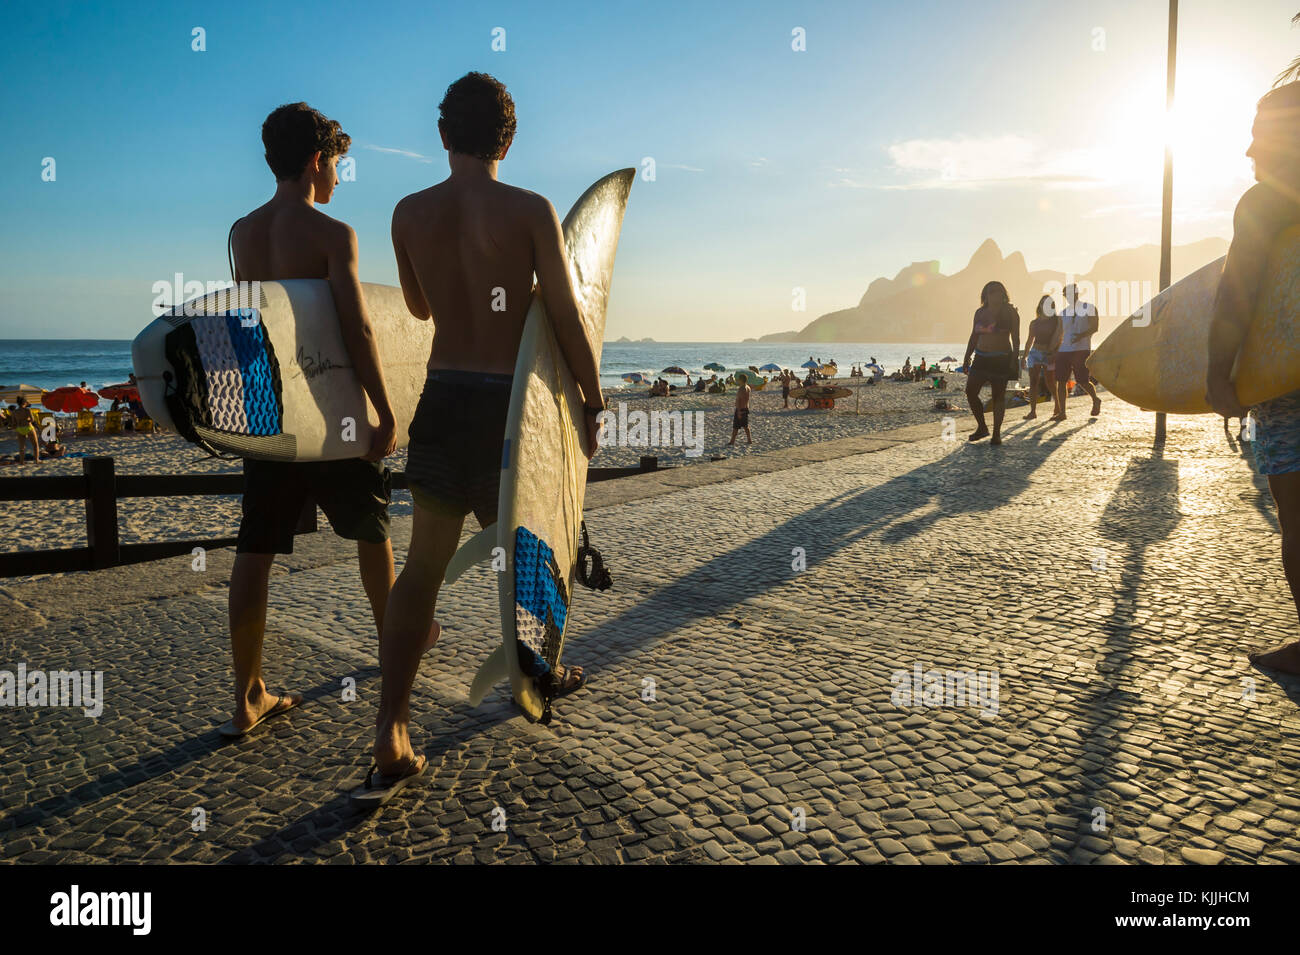 RIO DE JANEIRO - MARCH 24, 2017: Sunset silhouettes of two young surfers walking with surfboards at Arpoador with - Stock Image